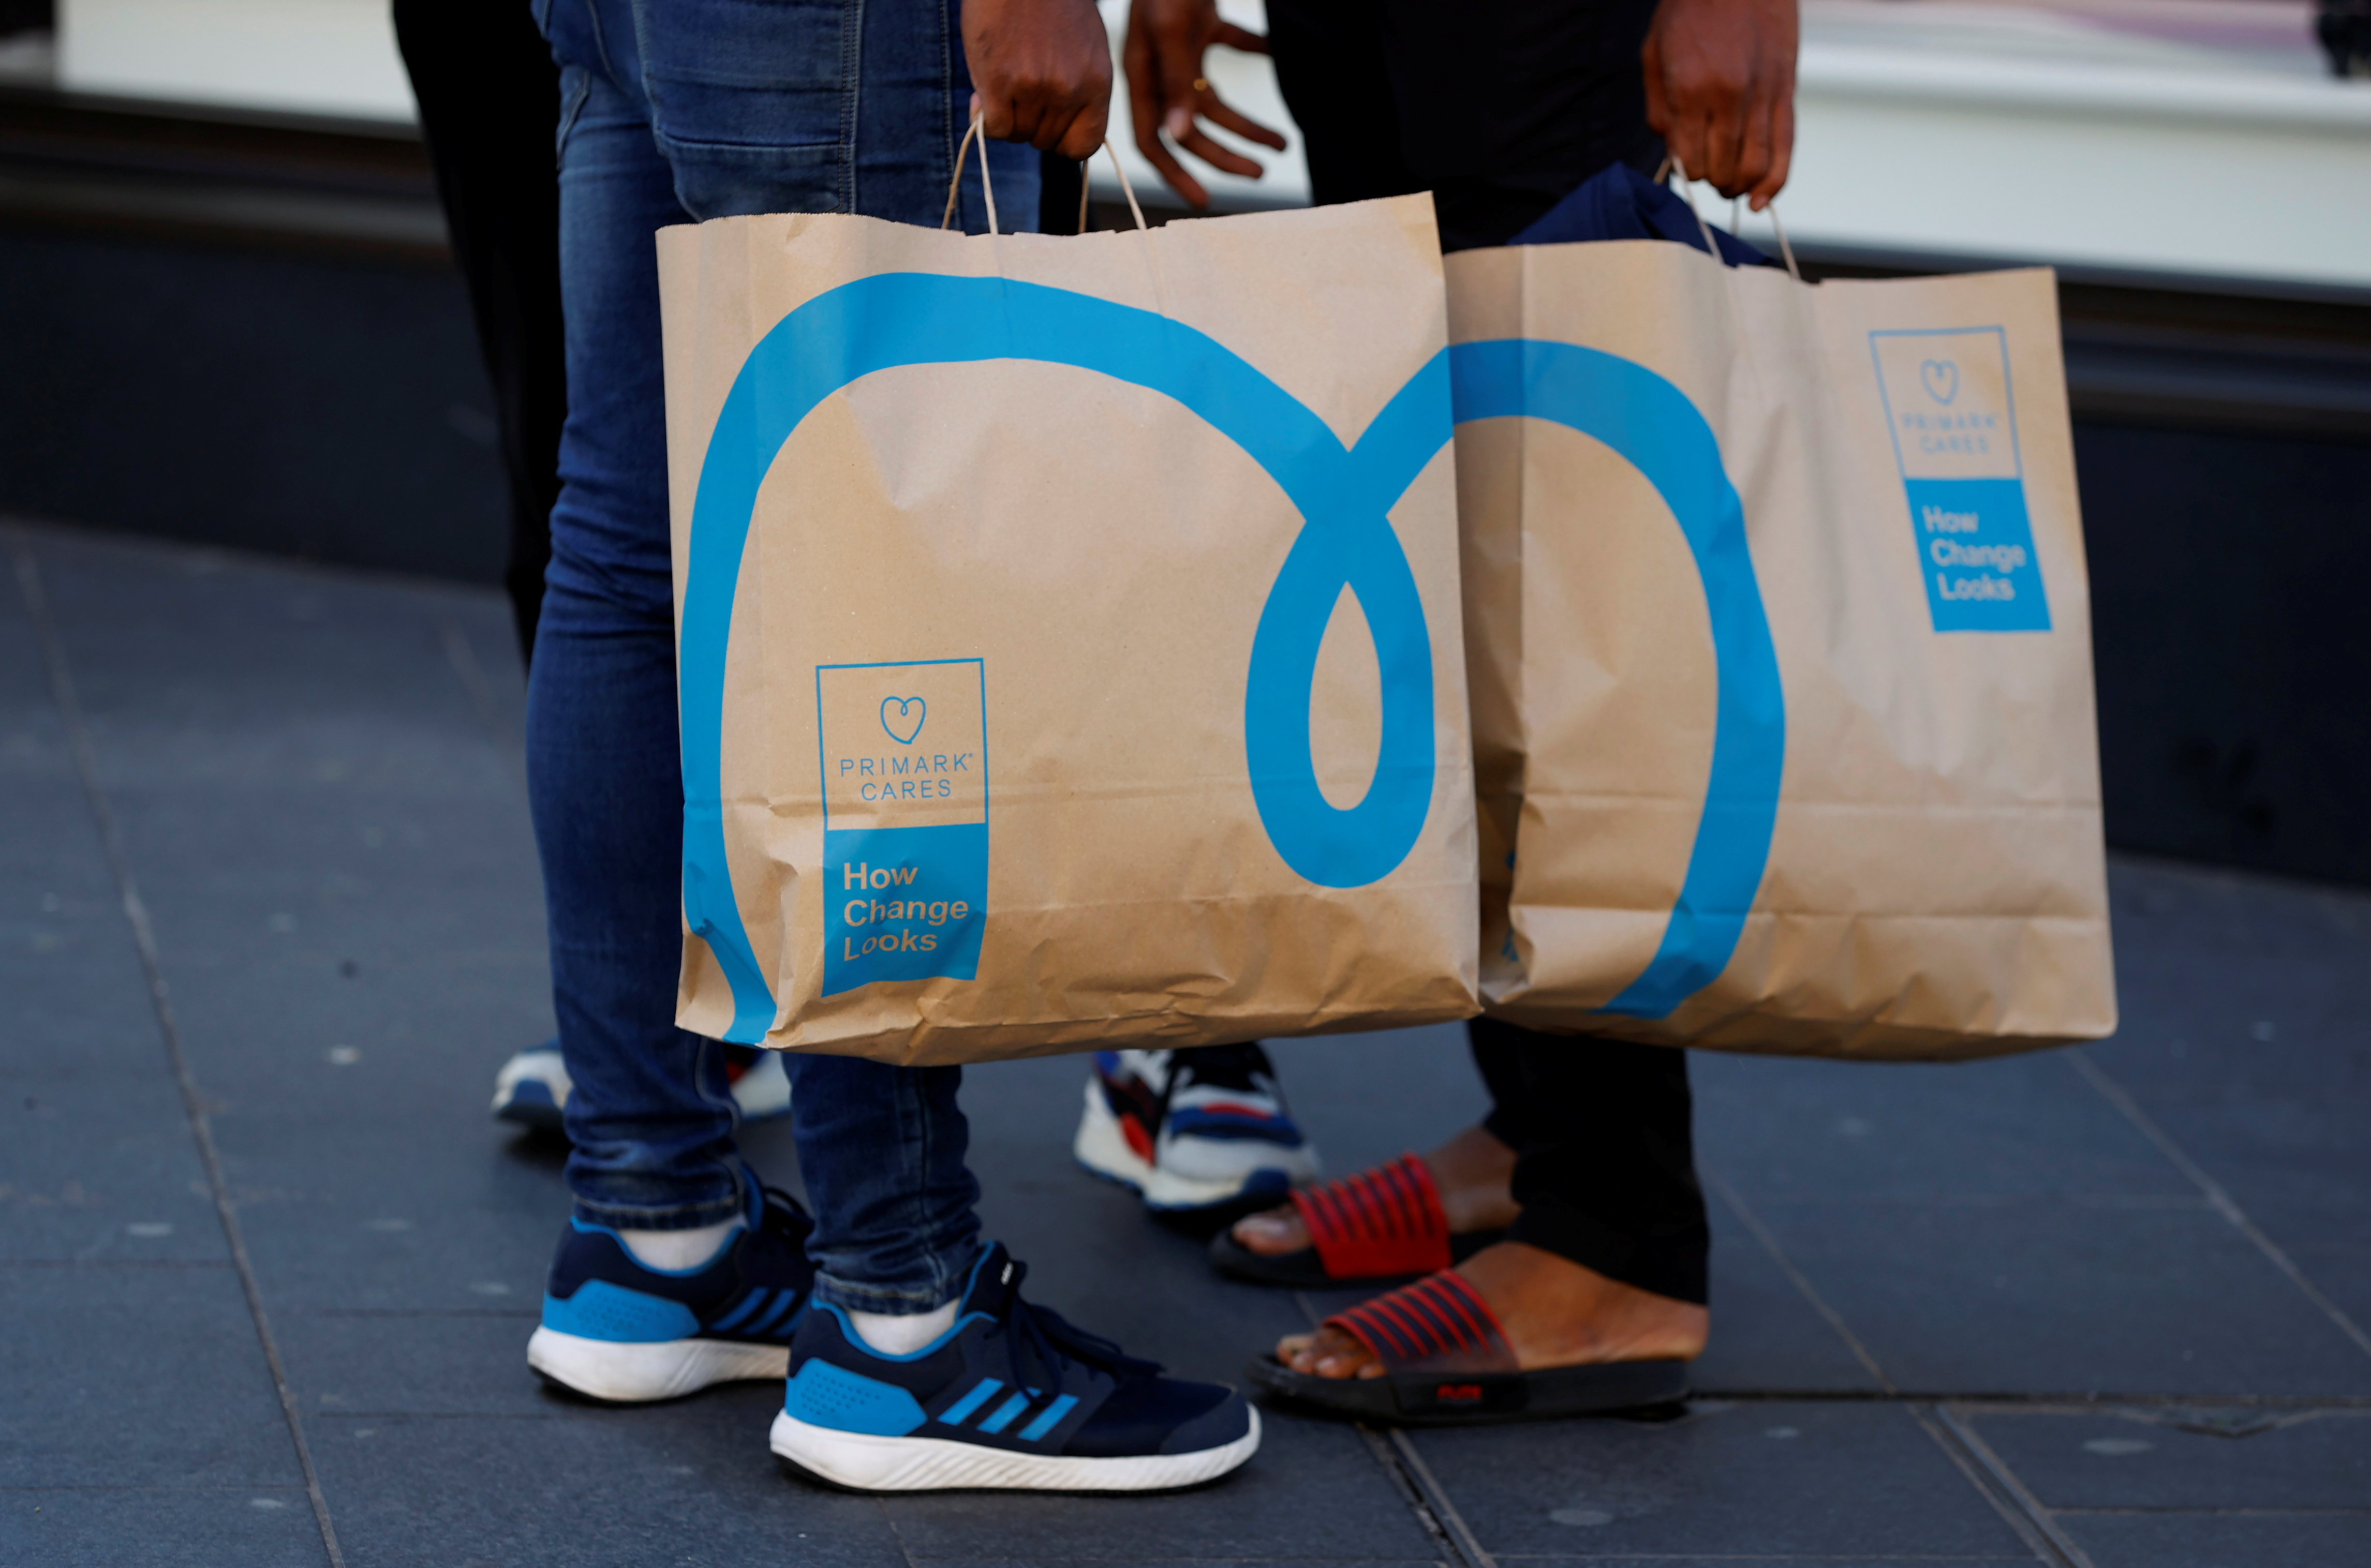 Shoppers holding newly environmentally themed bags stand outside a Primark store in Liverpool, Britain, September 15, 2021. REUTERS/Phil Noble